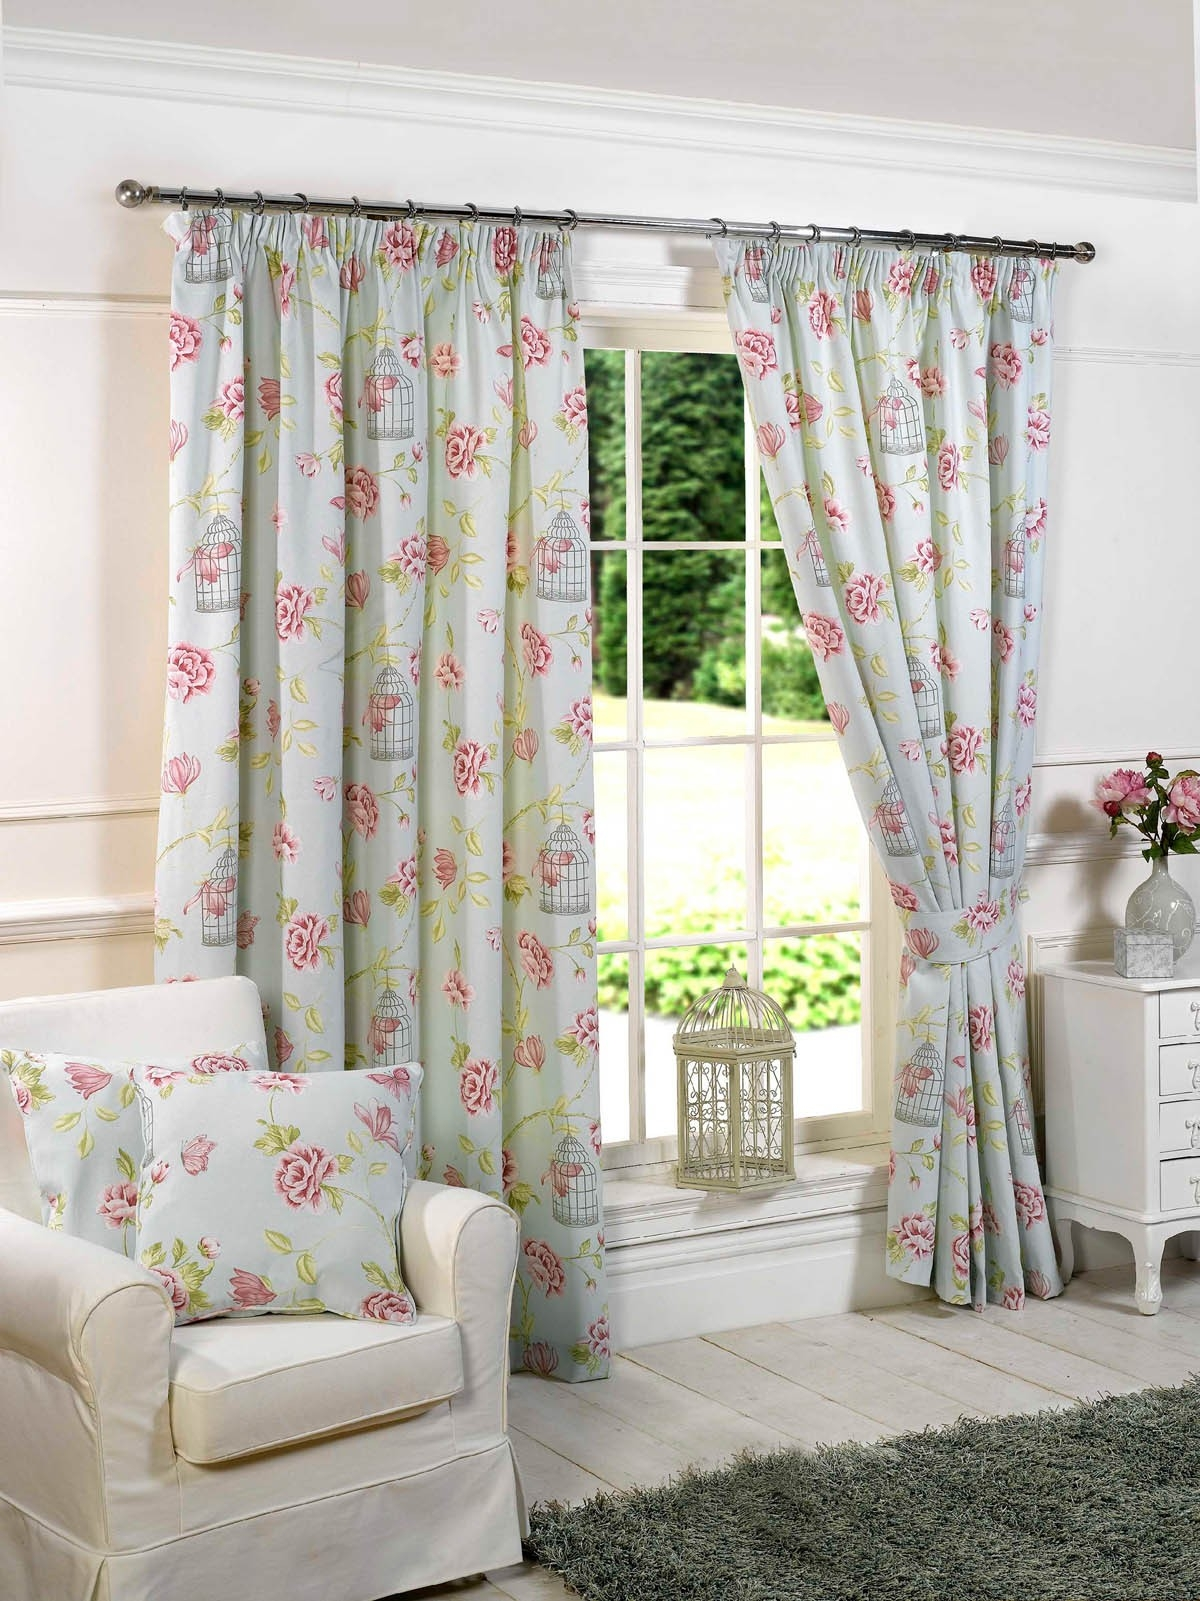 How To Hang Curtains In Bay Window Furniture Glugu Inside Ready Made Curtains For Large Bay Windows (Image 5 of 15)